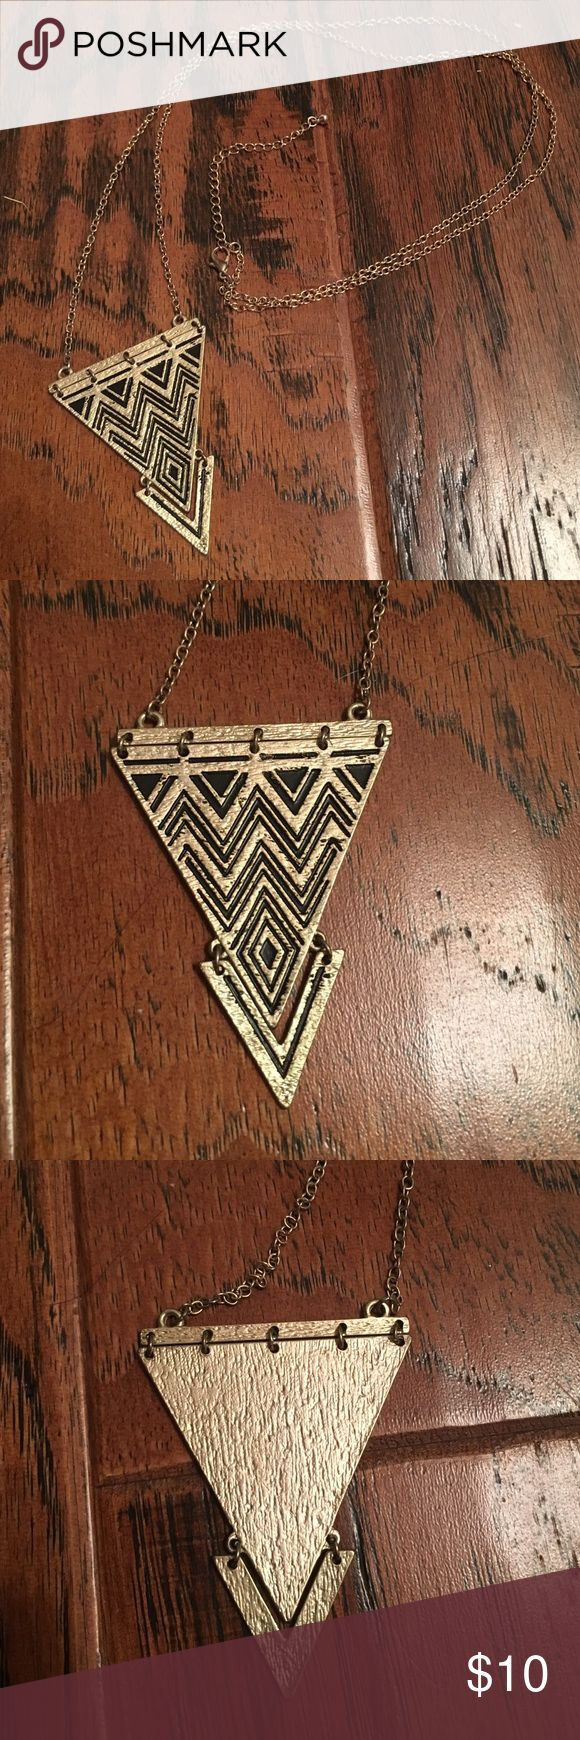 Chevron necklace Trendy gold and black chevron long necklace. Great with plain tops to jazz up any outfit. Jewelry Necklaces